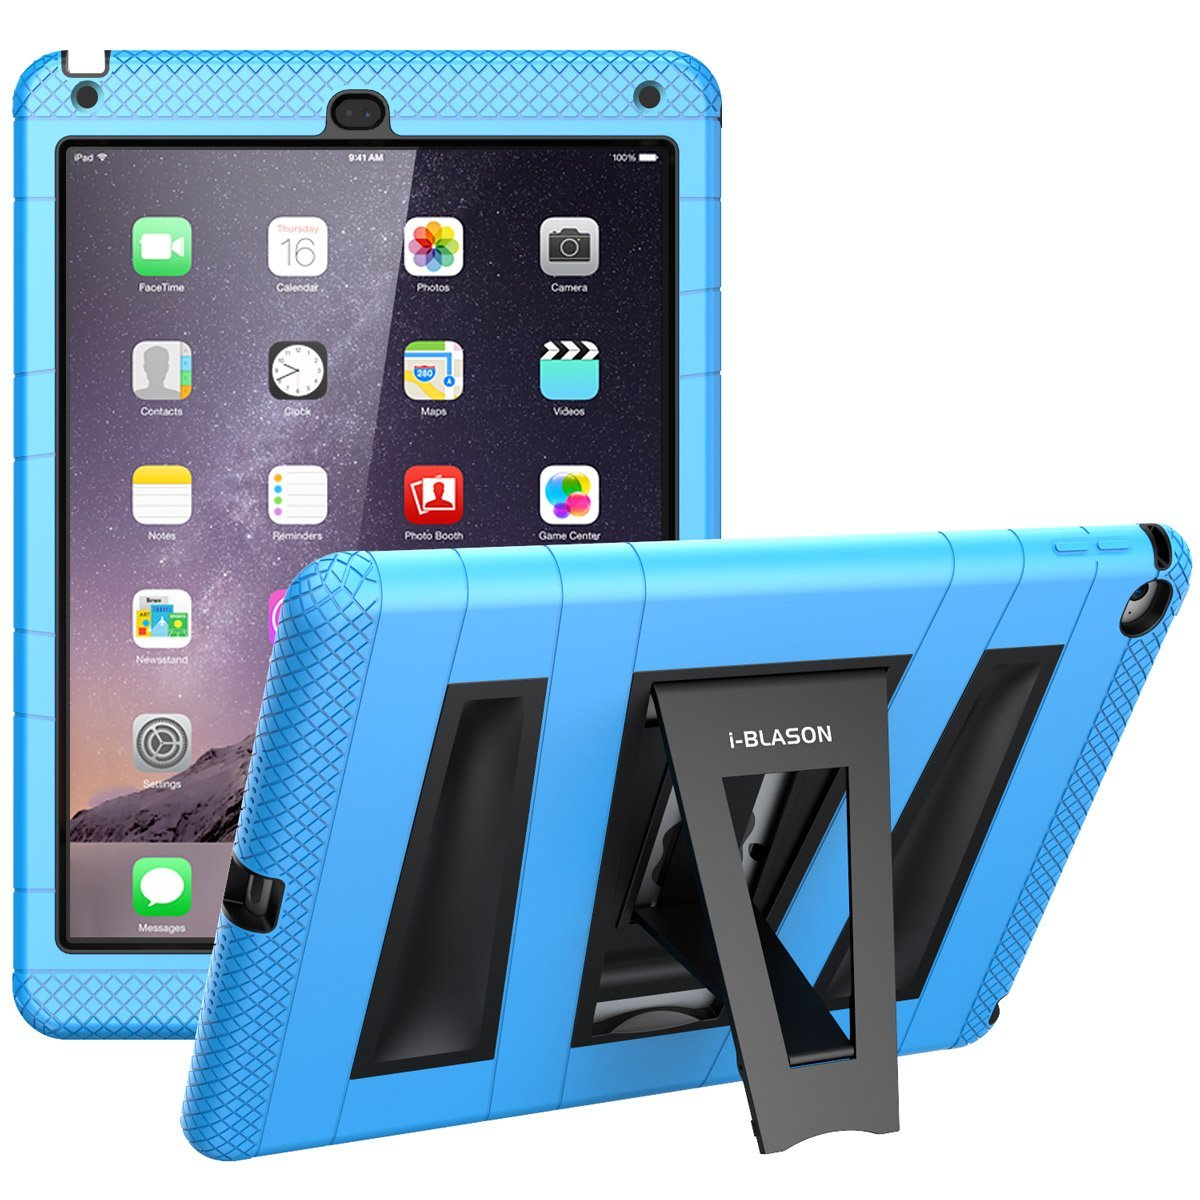 huge discount d2d38 095a7 i-Blason Protective Case For Apple iPad Air 2 9.7